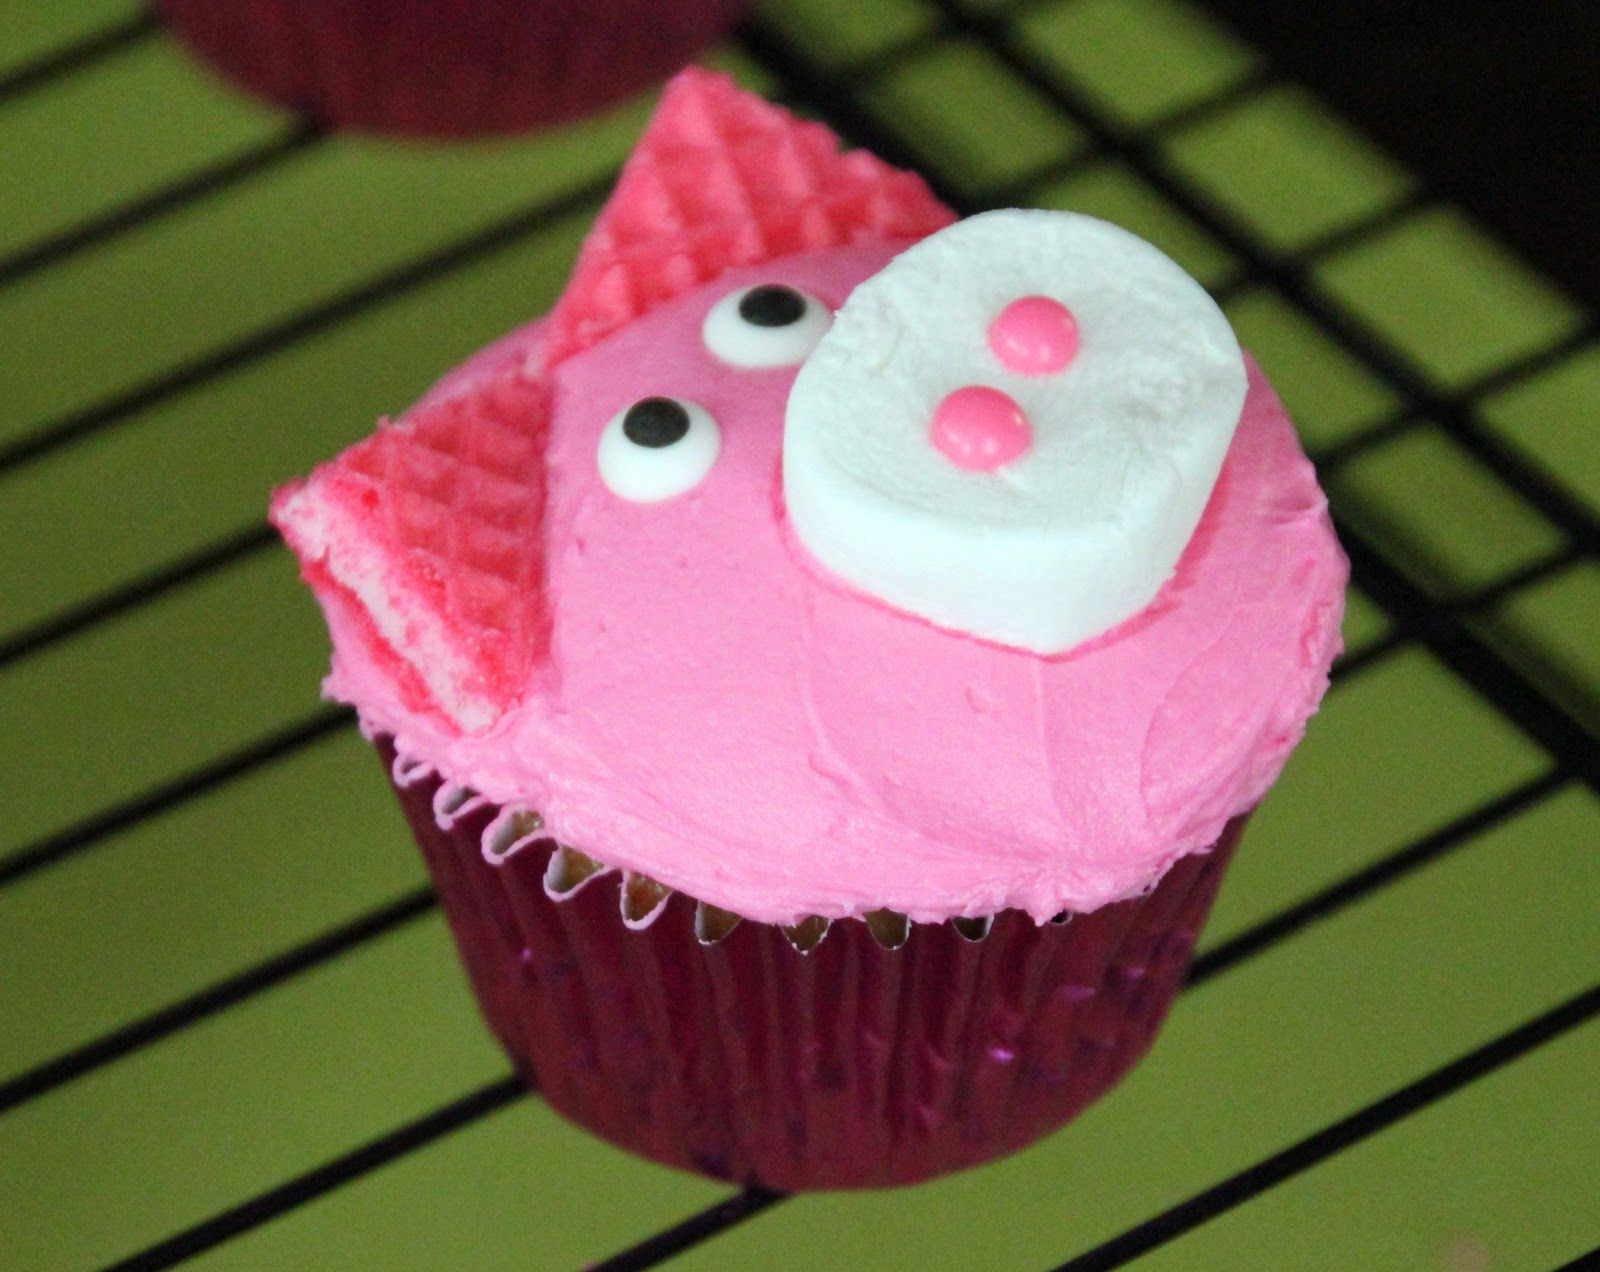 Life Is Sweets: These Little Piggies Did Not Come From The